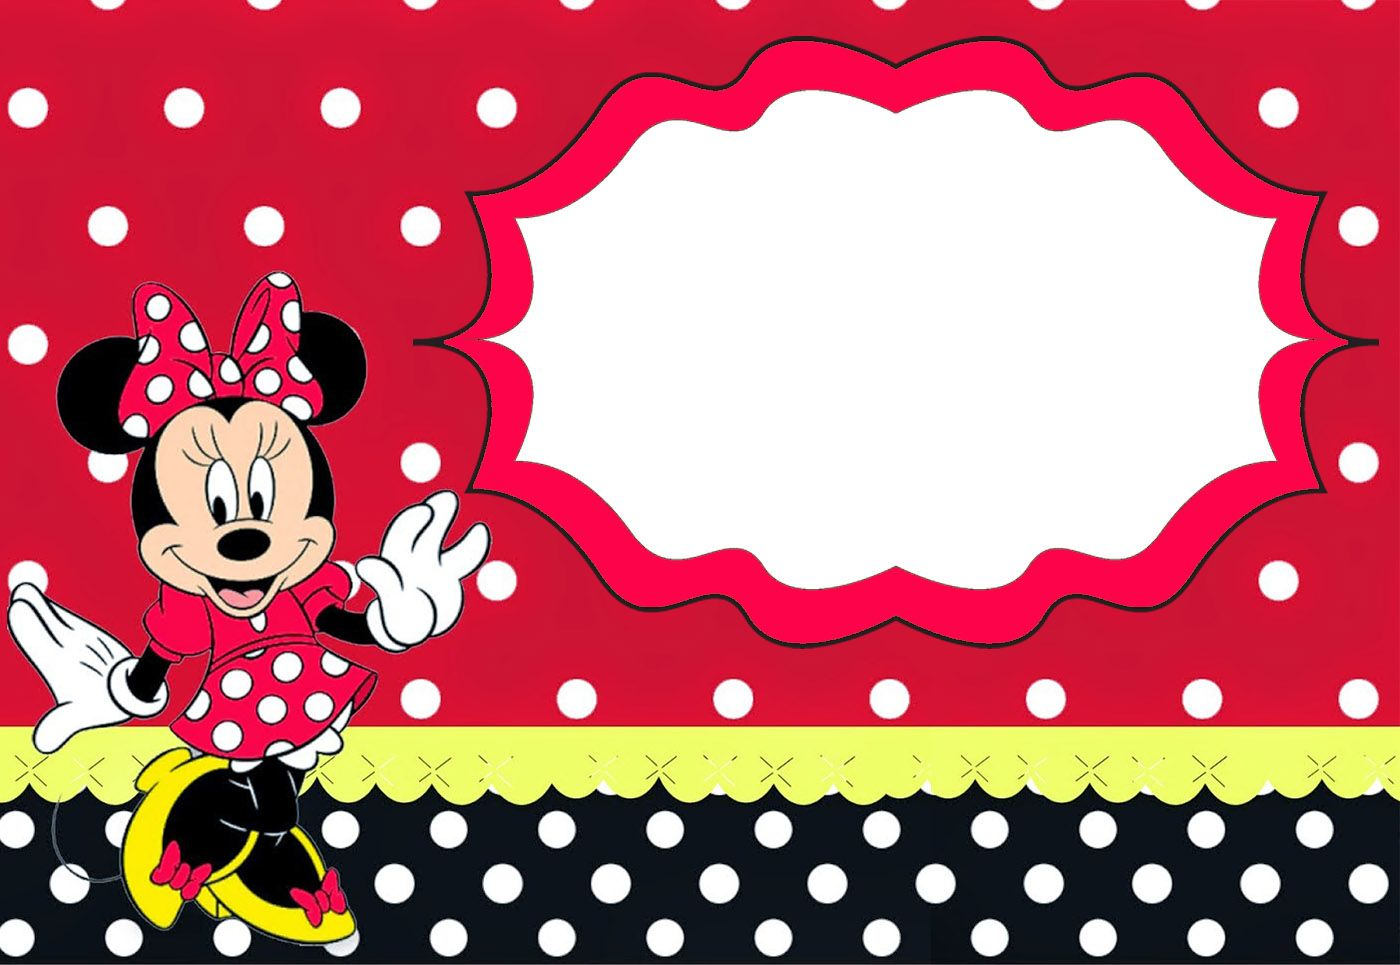 Minnie Mouse Birthday Party Invitation Template